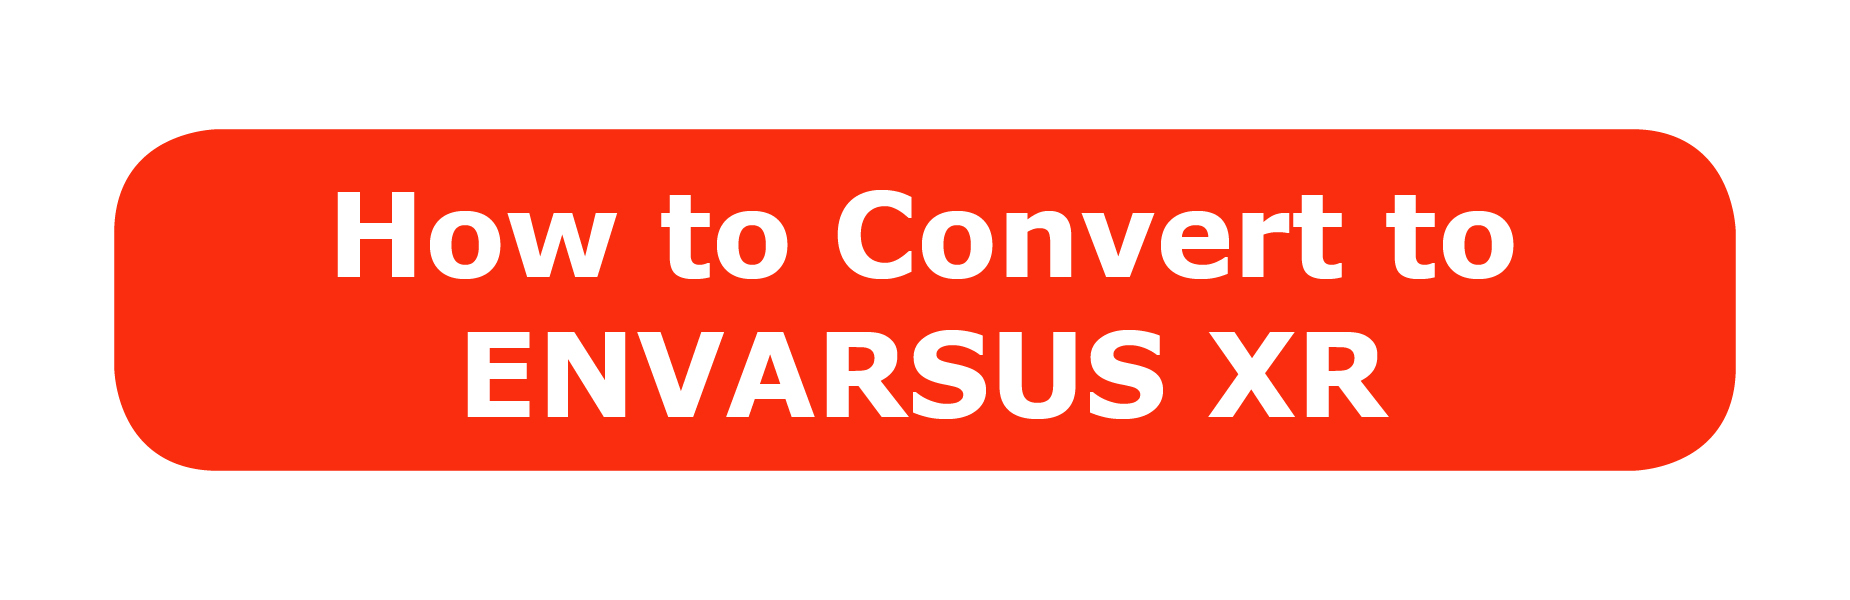 How to Convert to ENVARSUS XR button